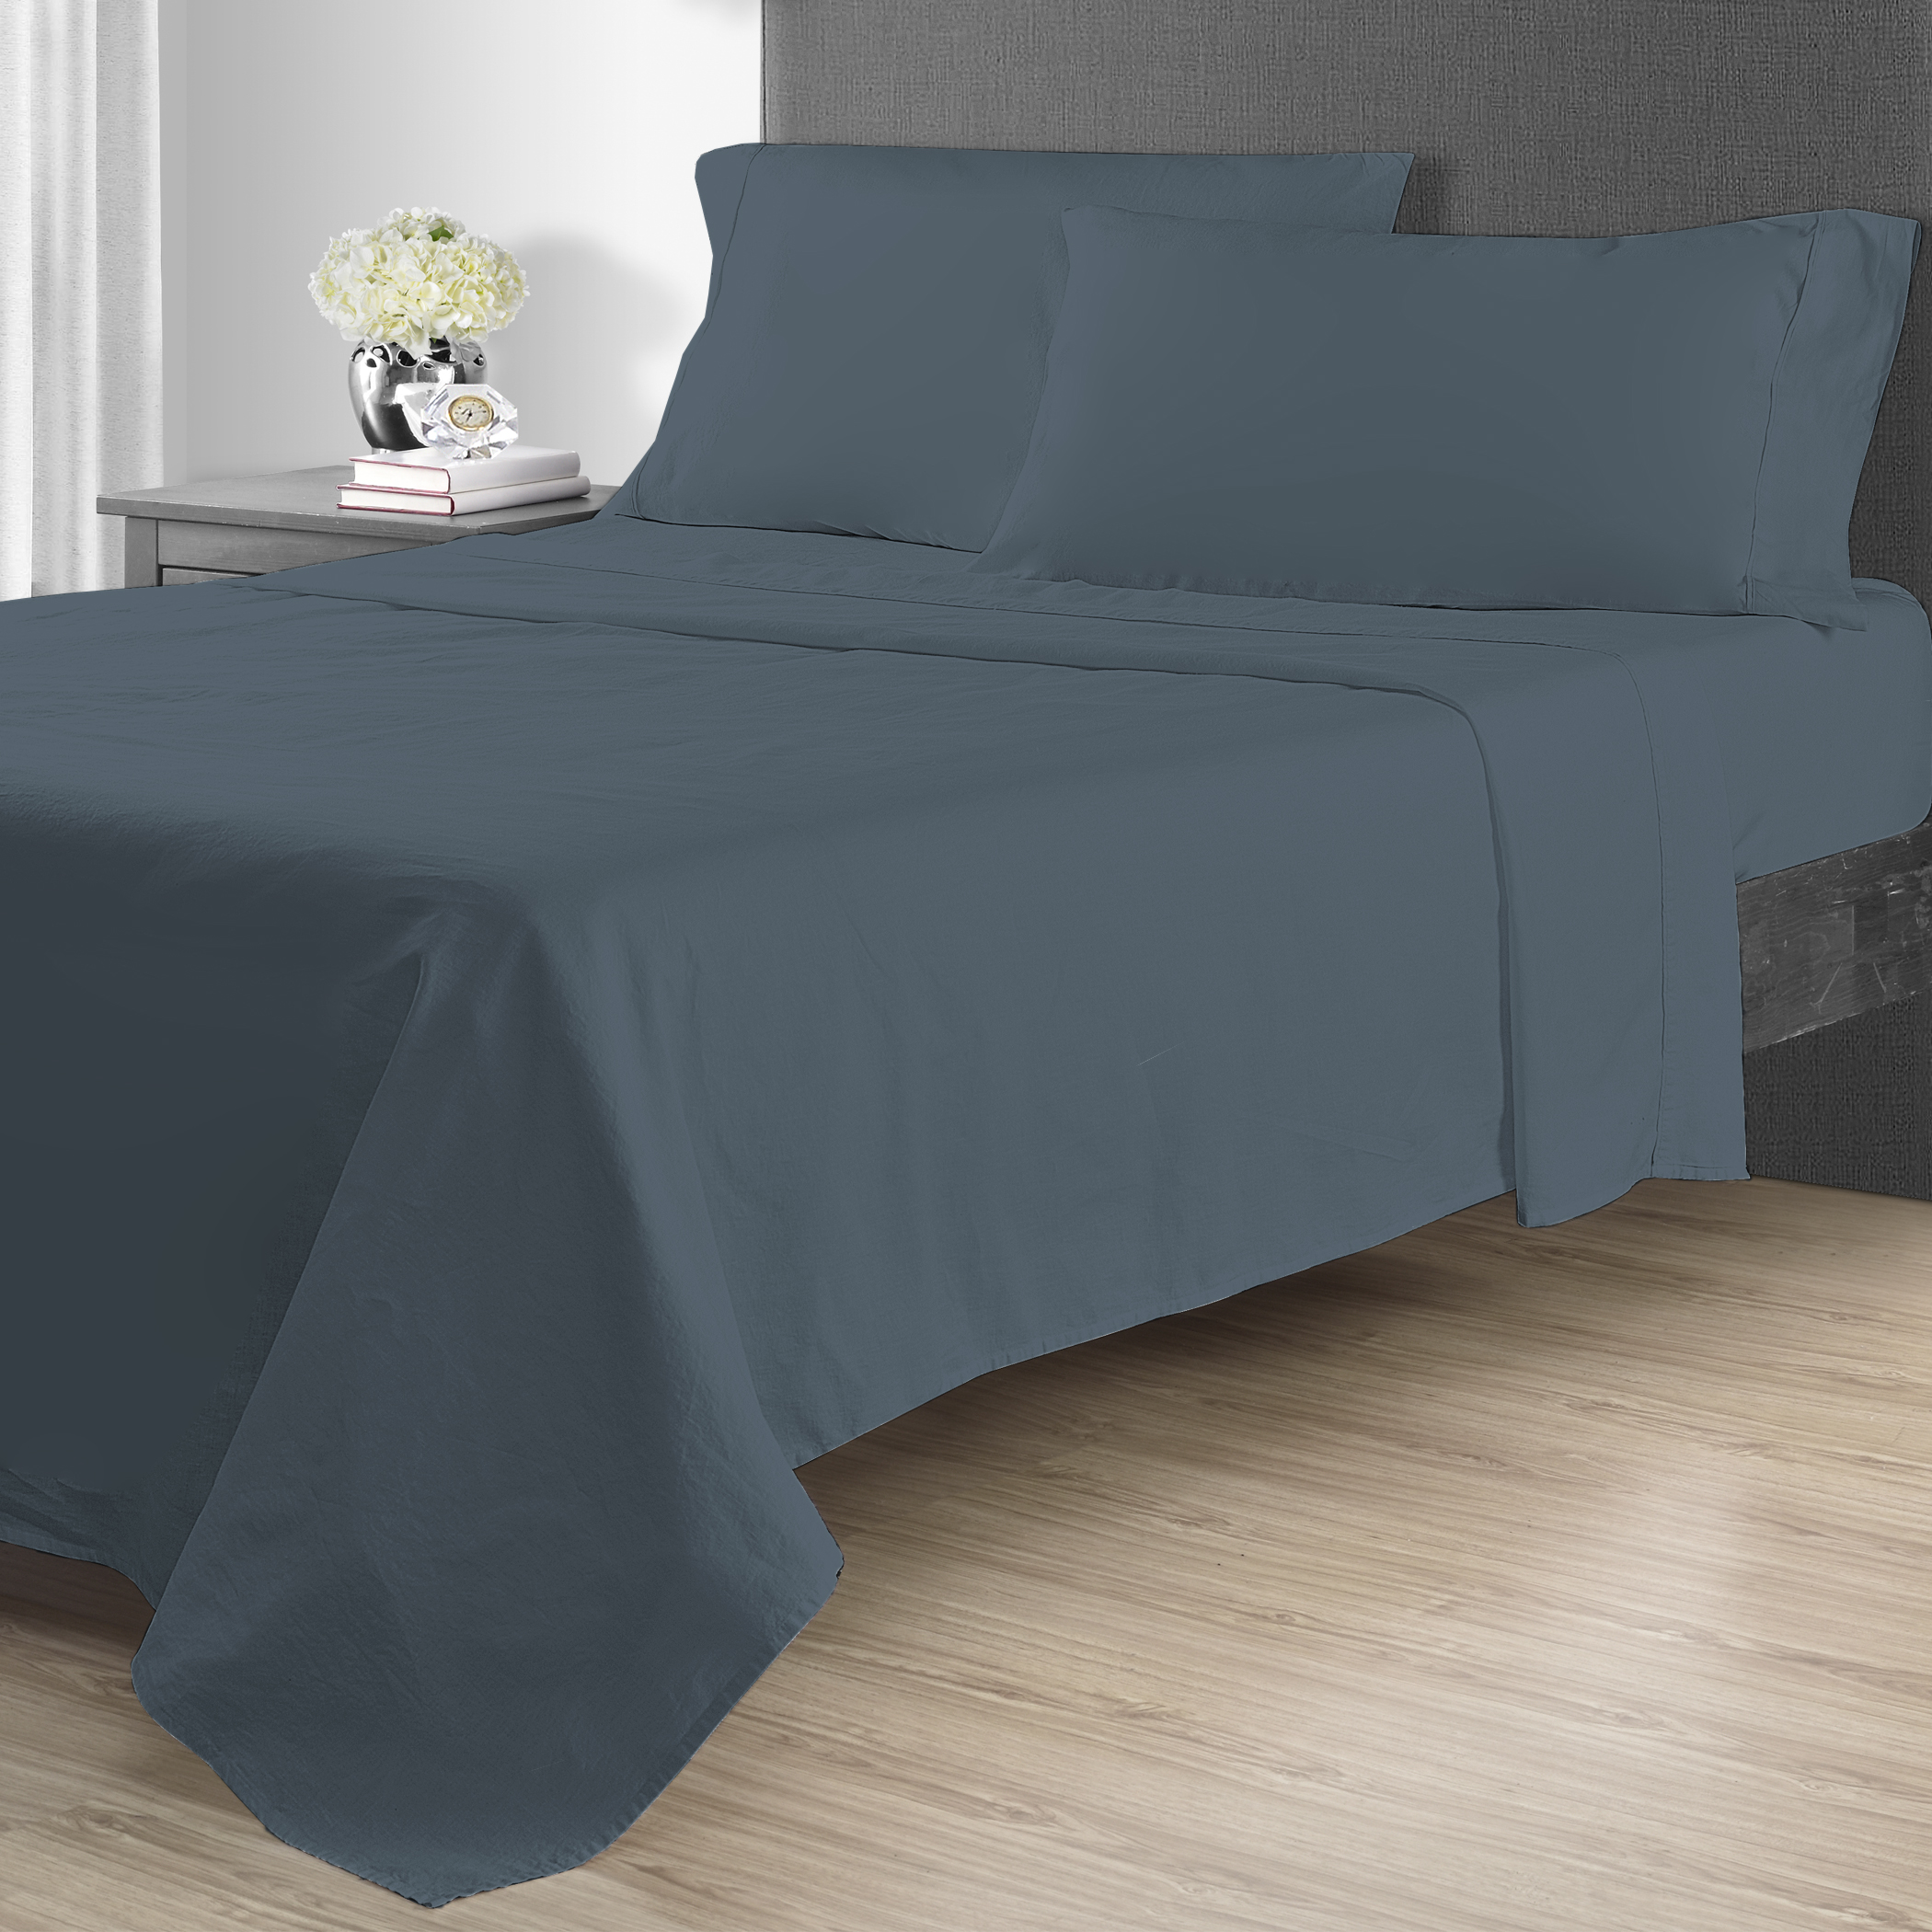 Better Homes & Gardens 4pc Linen Blend Sheet Sets